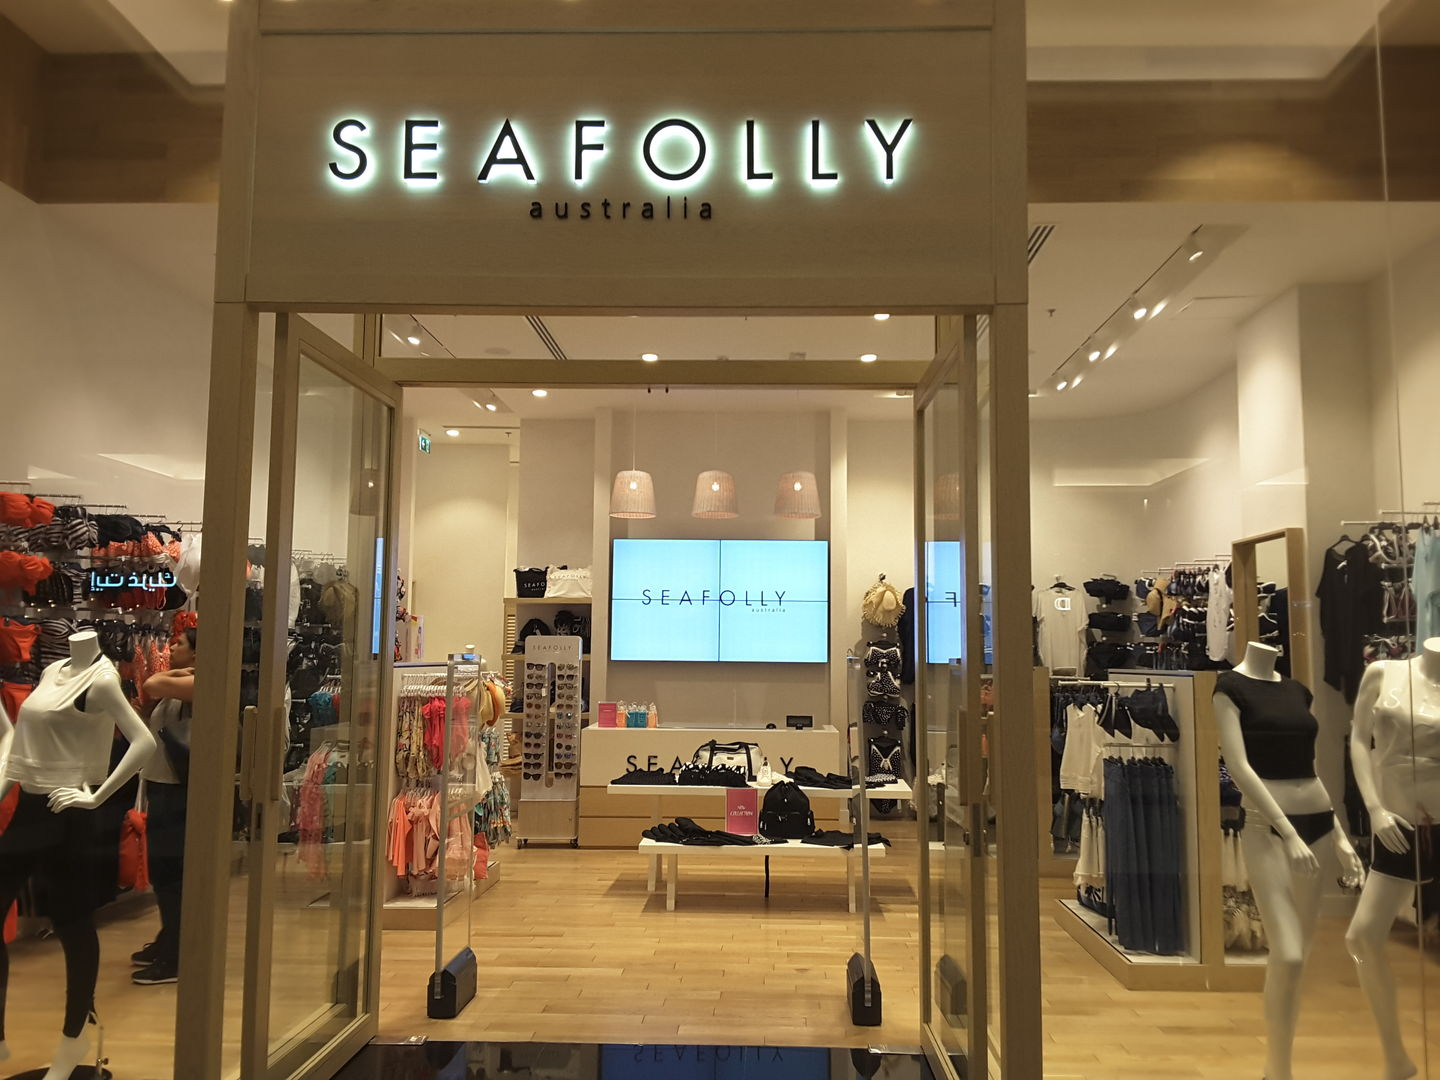 HiDubai-business-seafolly-australia-shopping-apparel-al-barsha-1-dubai-2